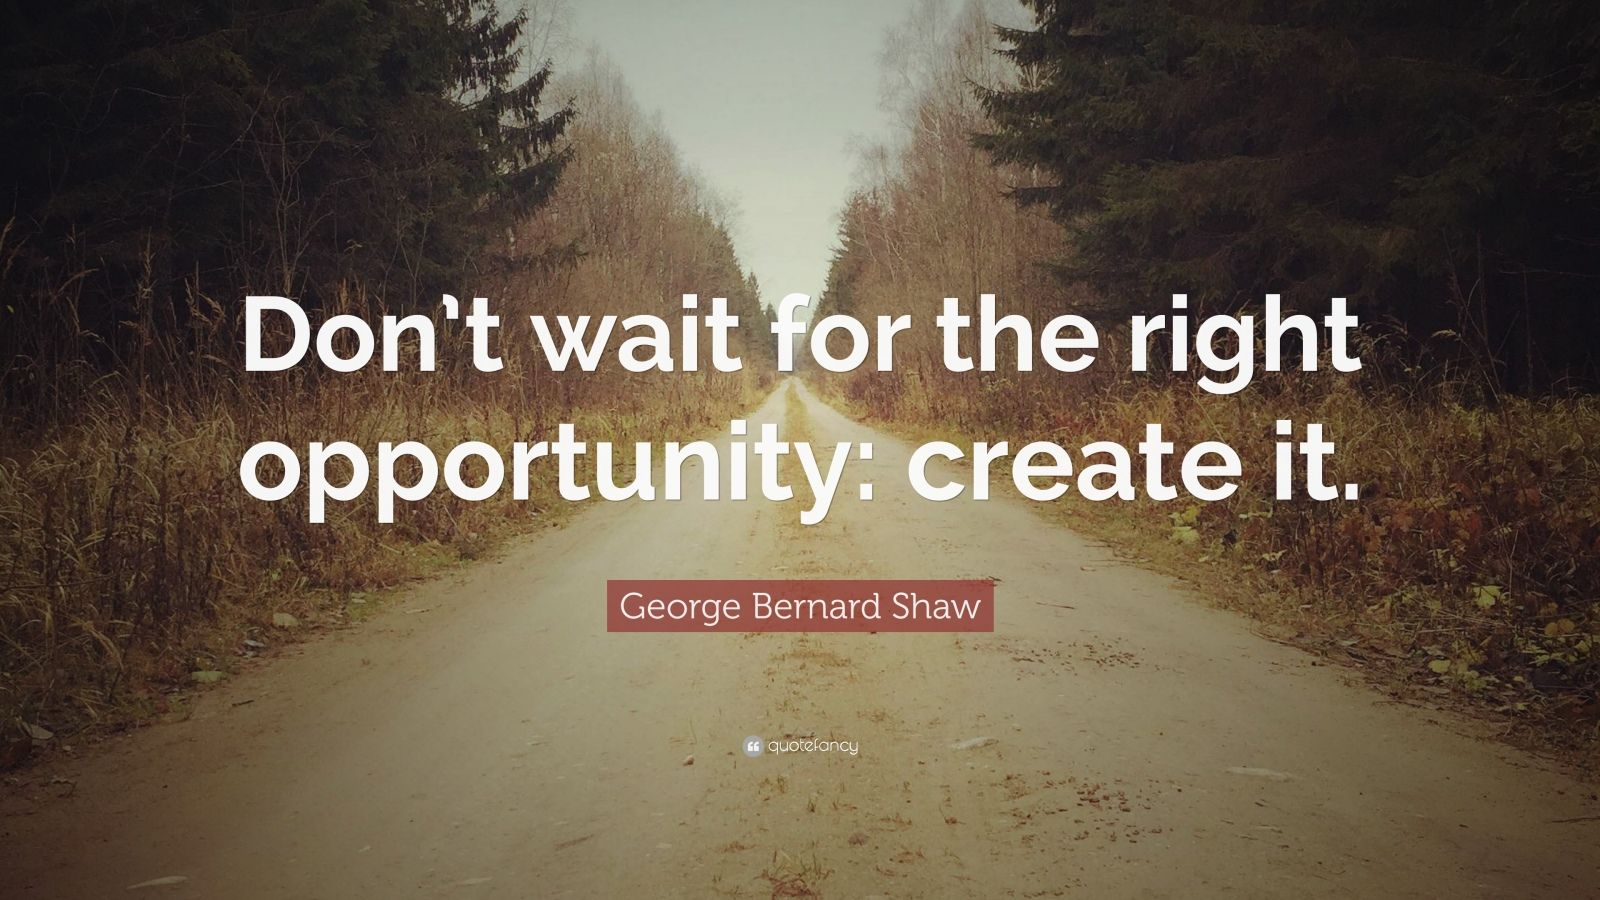 "Quotes About Waiting: ""Don't wait for the right opportunity: create it."" — George Bernard Shaw"